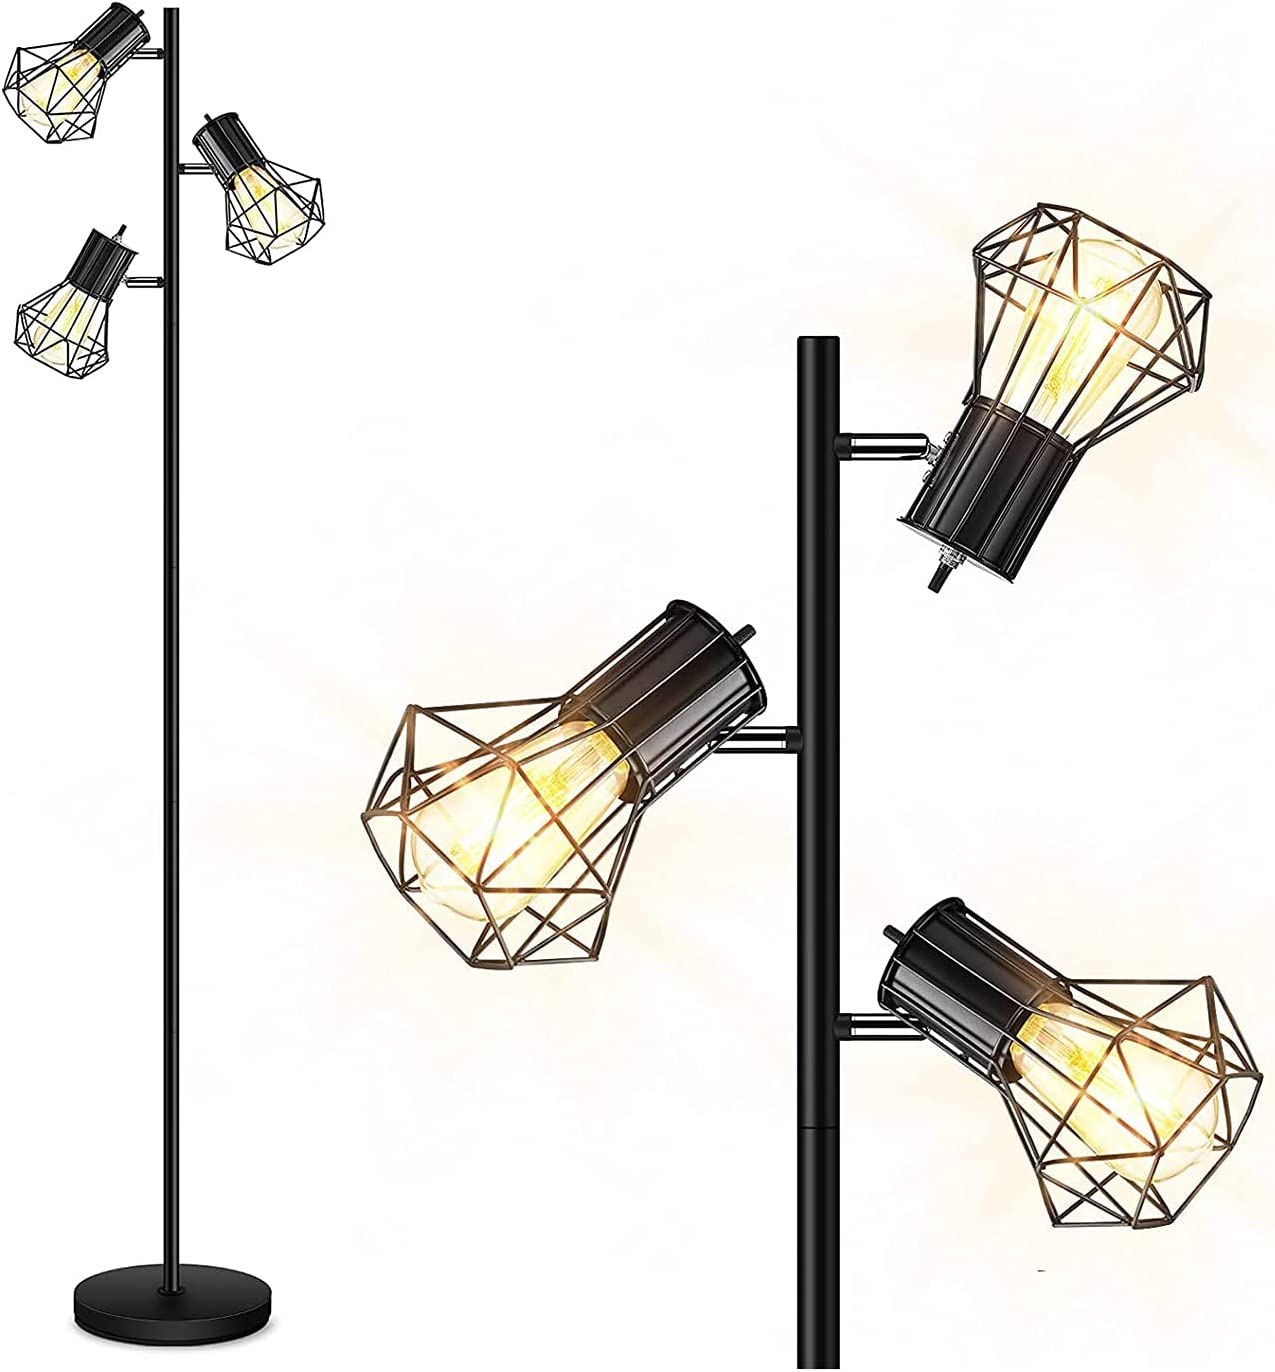 Industrial Floor Lamp Standing Adjustable Heads Latest item Free Cage shipping